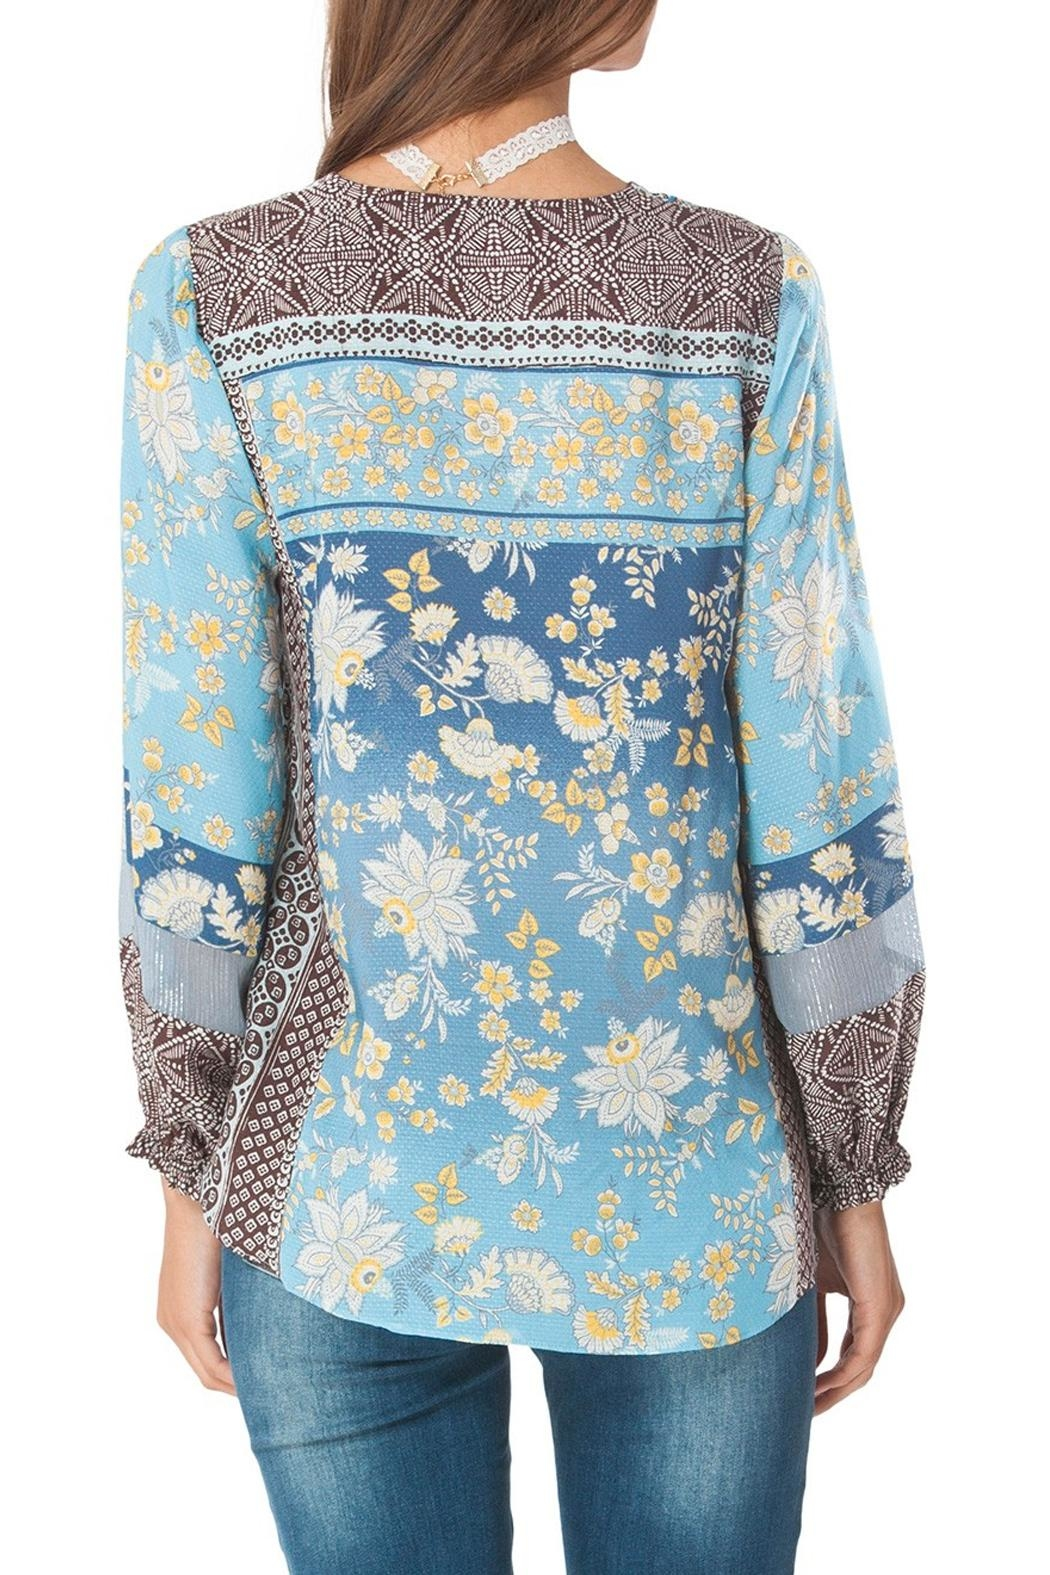 Hale Bob Athena Floral Tunic Top - Front Full Image